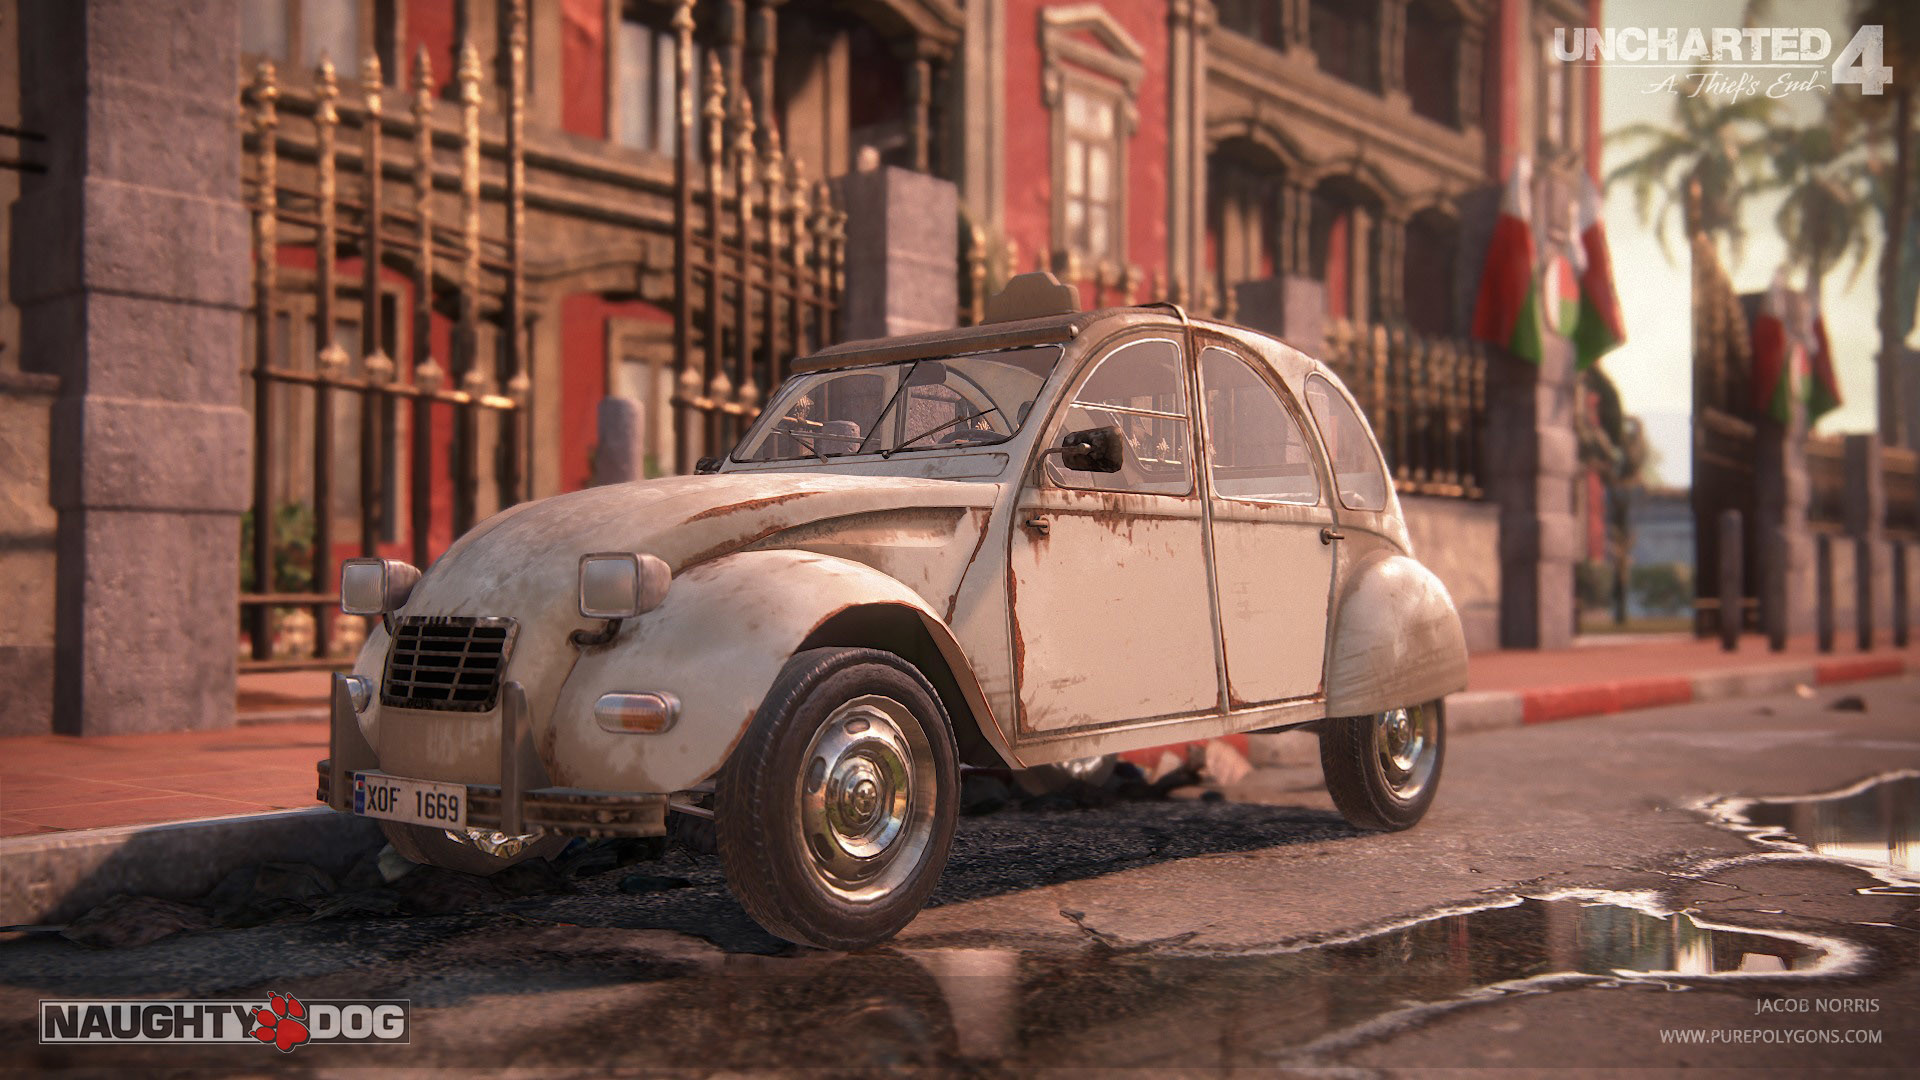 jacob-norris-jacobnorris-uncharted4-texture-shader-work-00